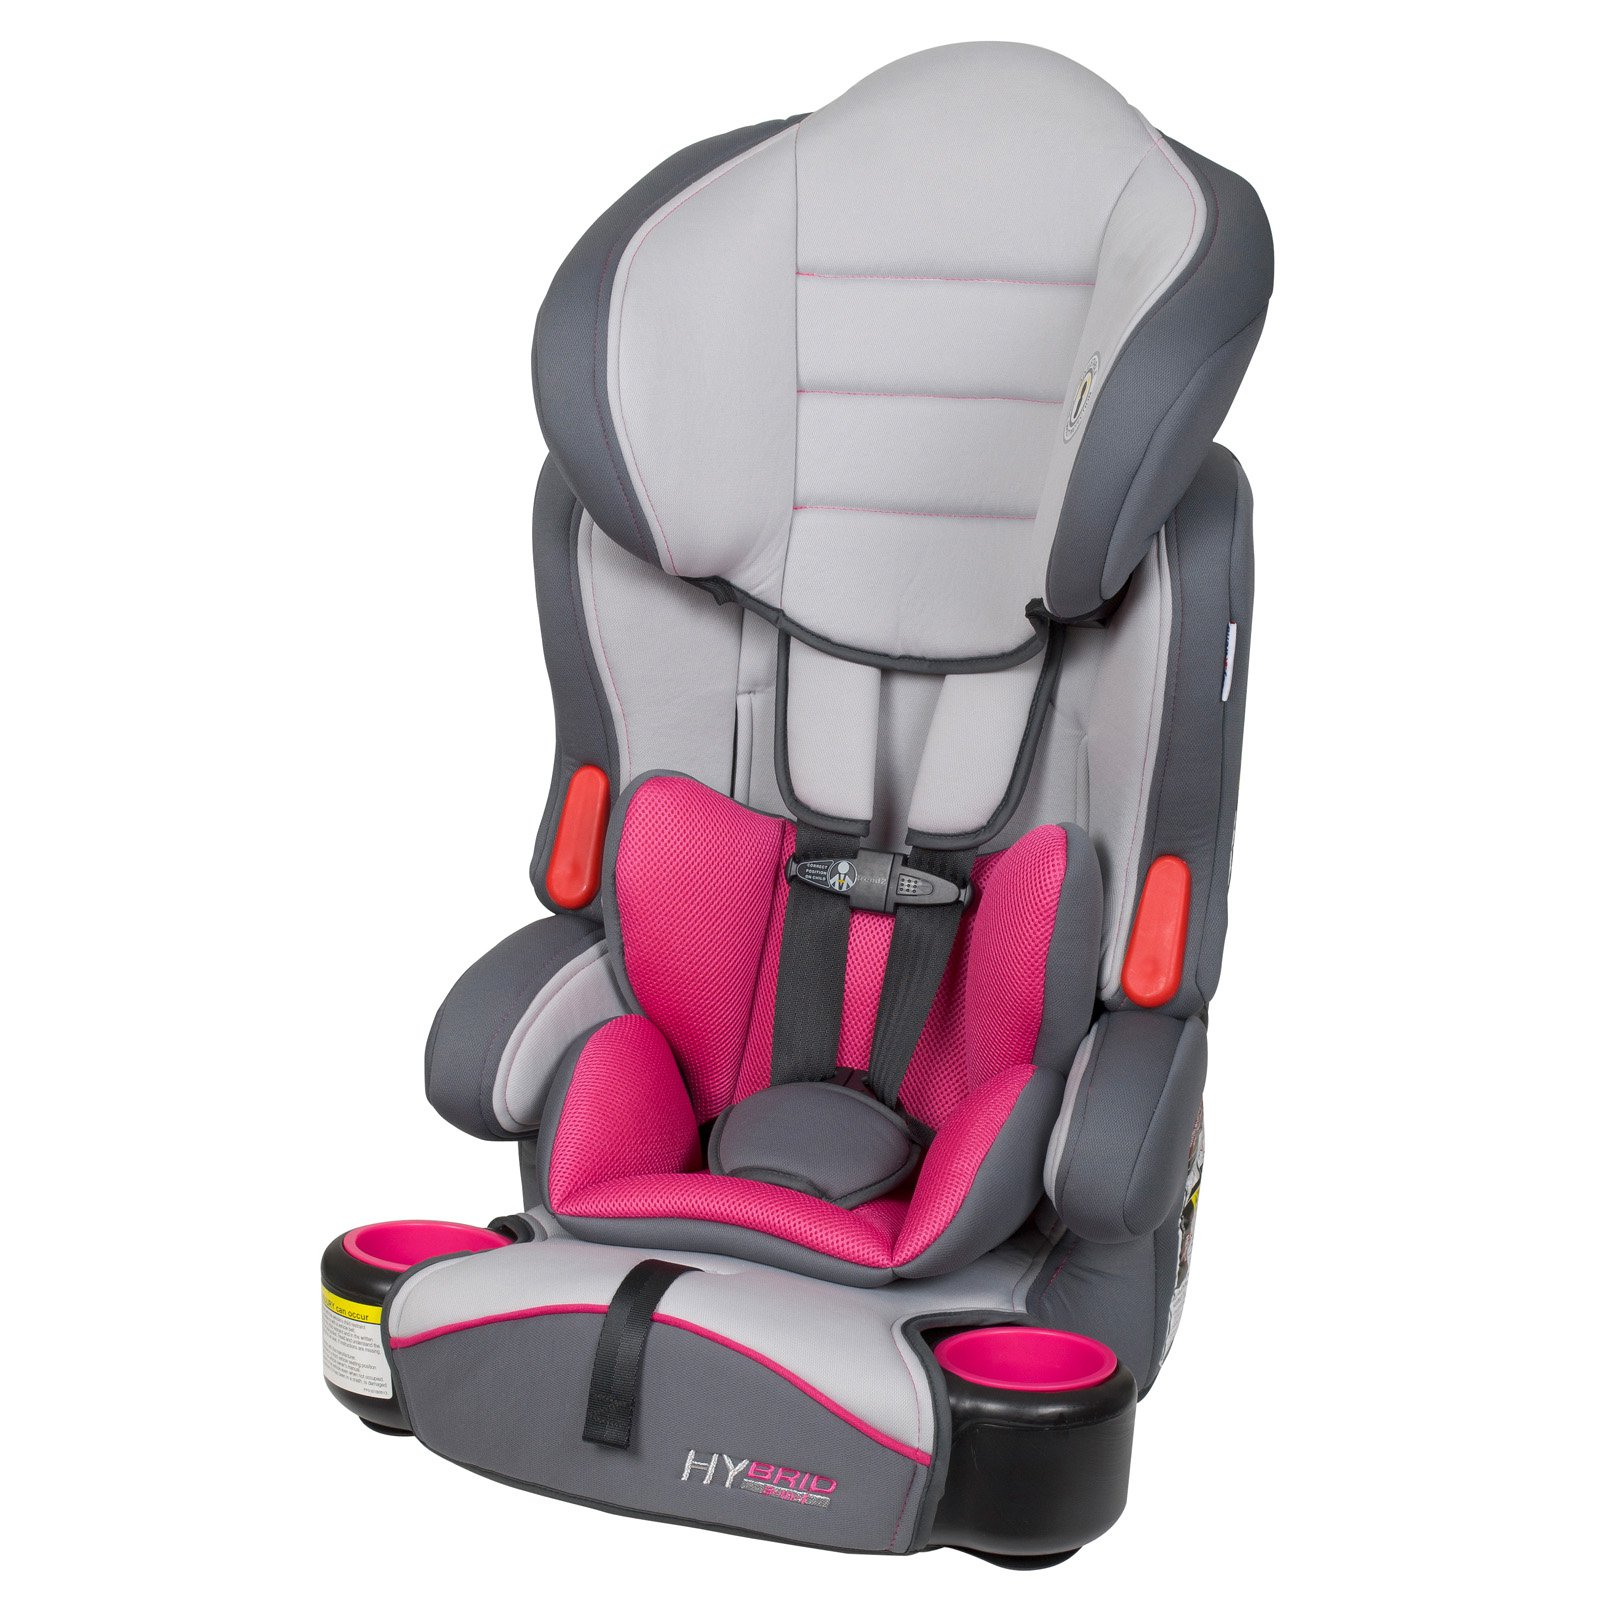 Baby Trend Hybrid 3-in-1 Car Seat - Melody